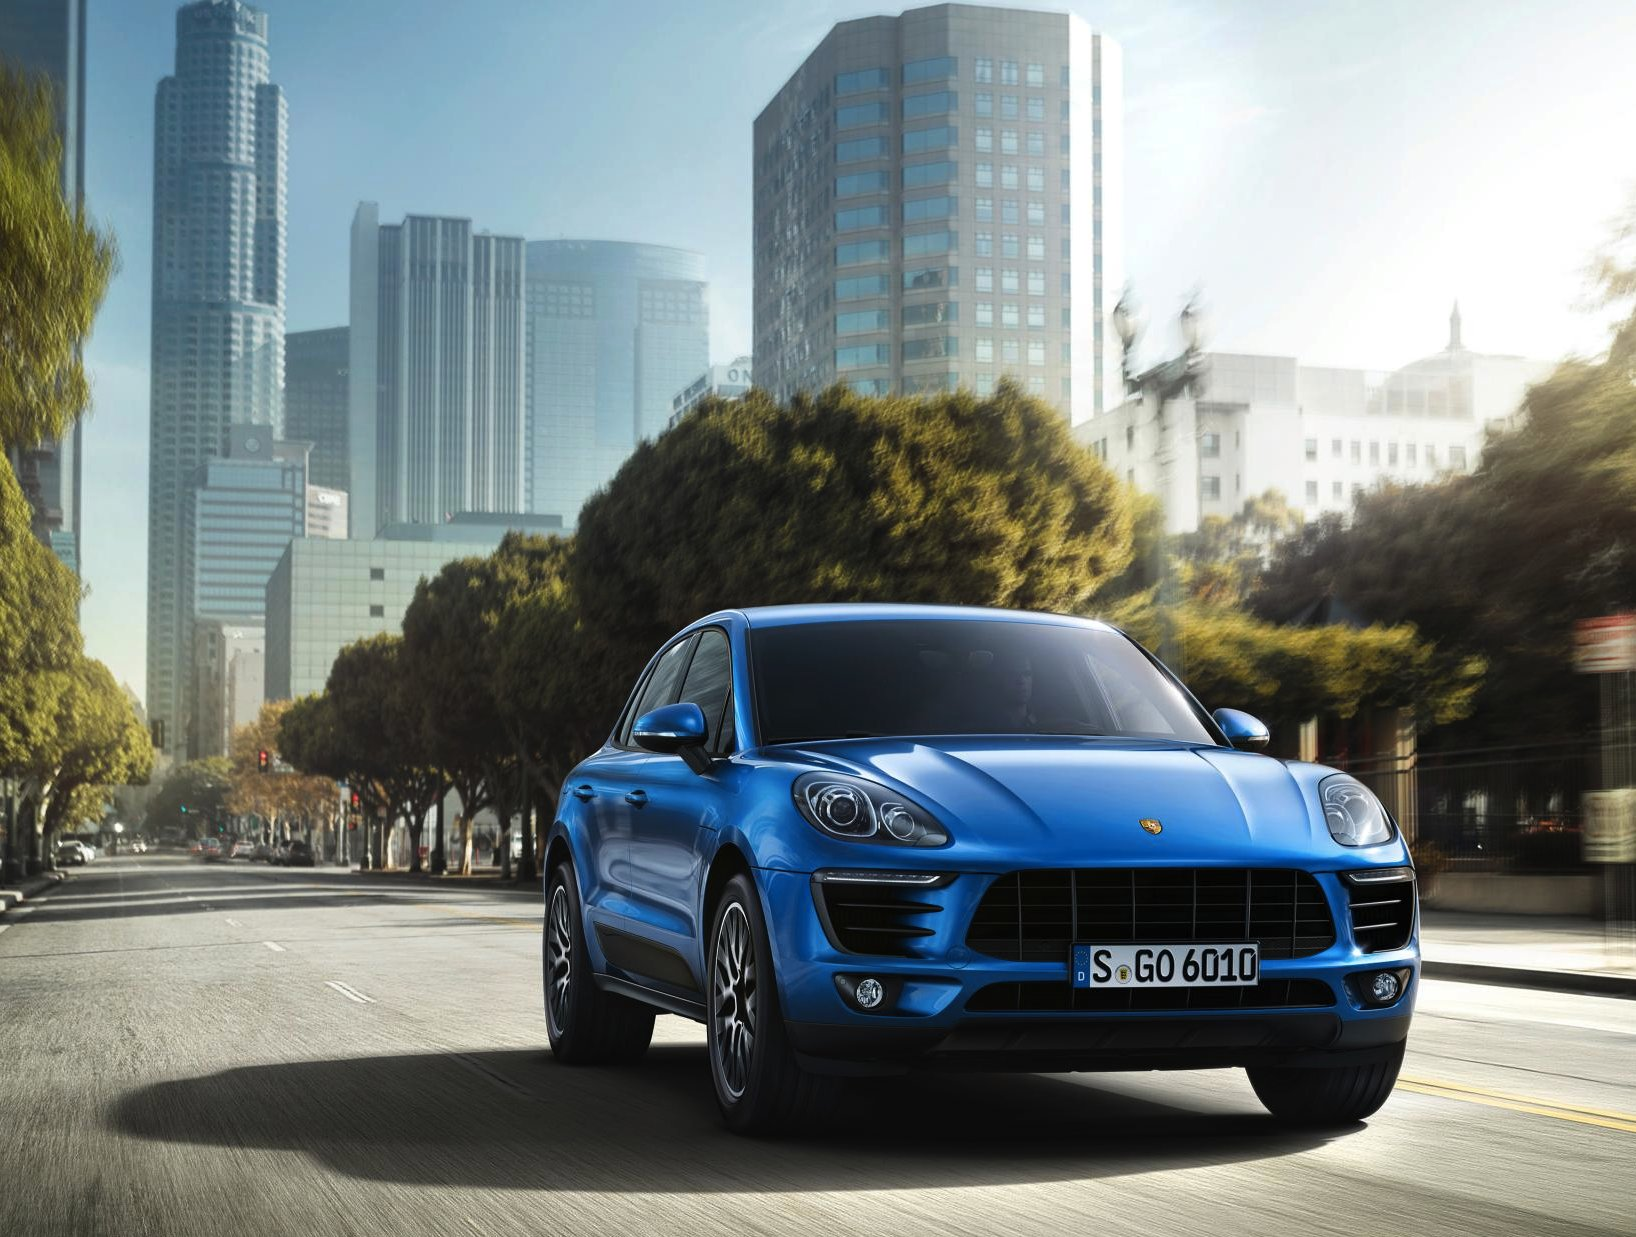 Porsche Macan Baby SUV Detailed: Latest News – Surf4cars